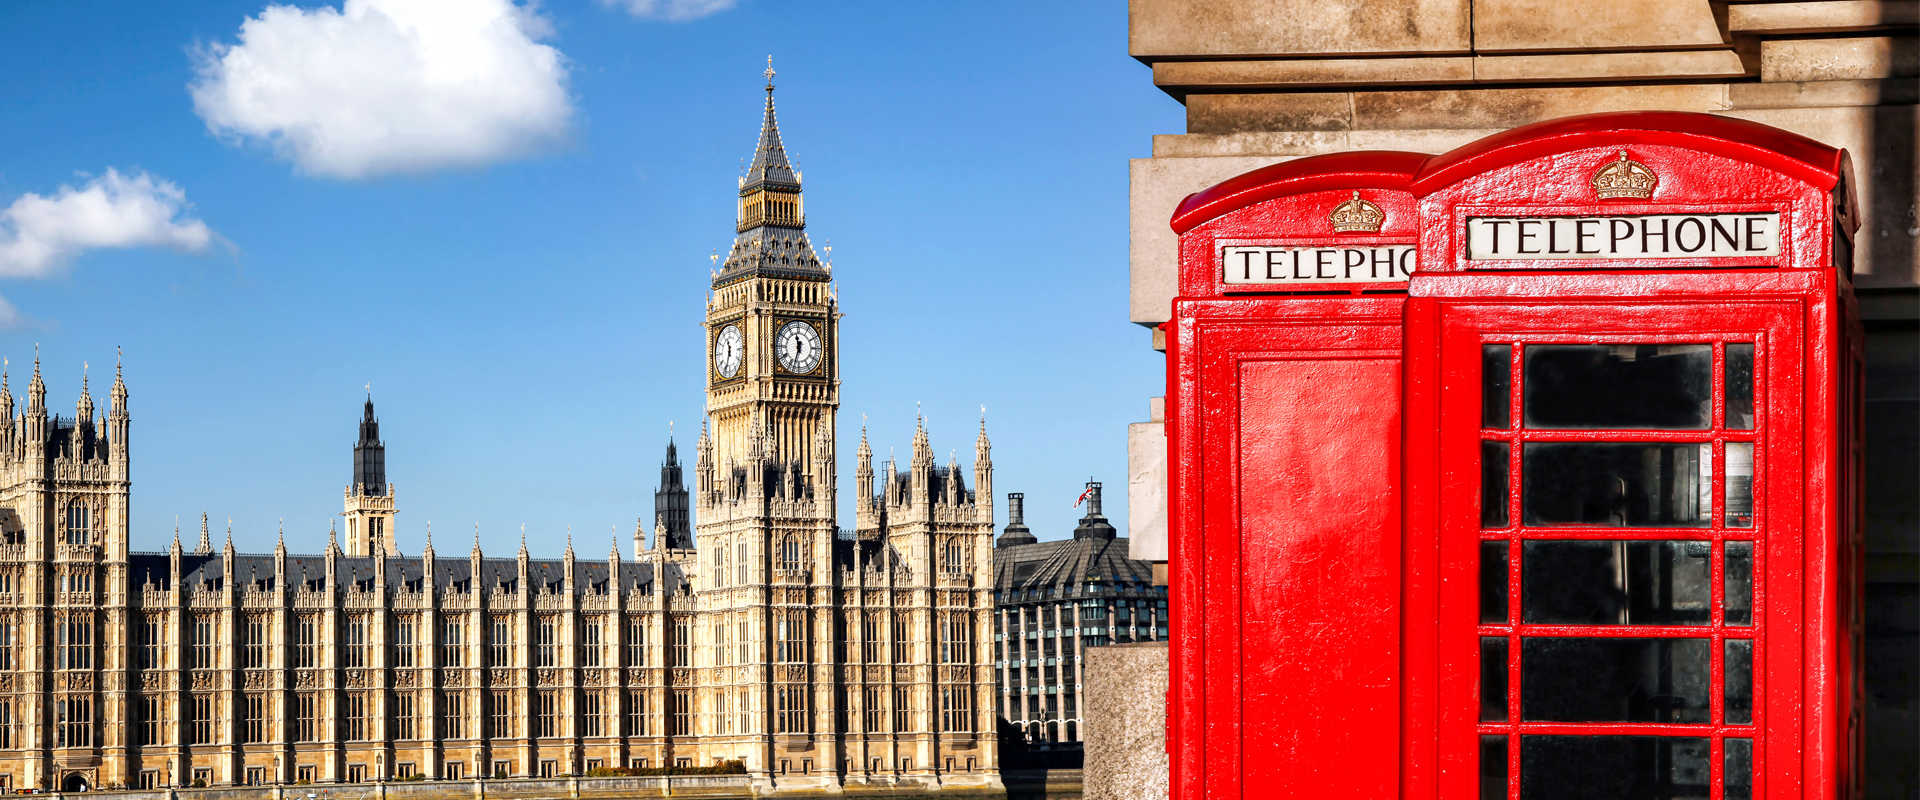 London - view of the Houses of Parliament with the Big Ben clock tower in the foreground with a red telephone box